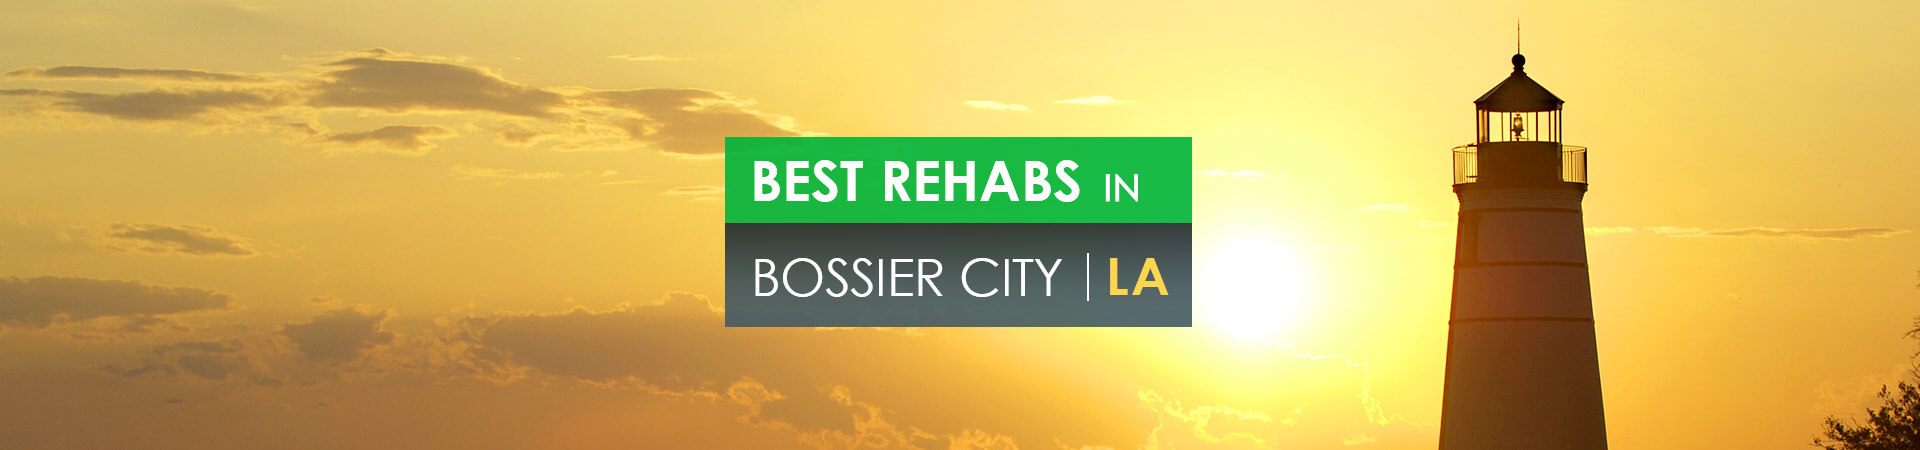 Best rehabs in Bossier City, LA